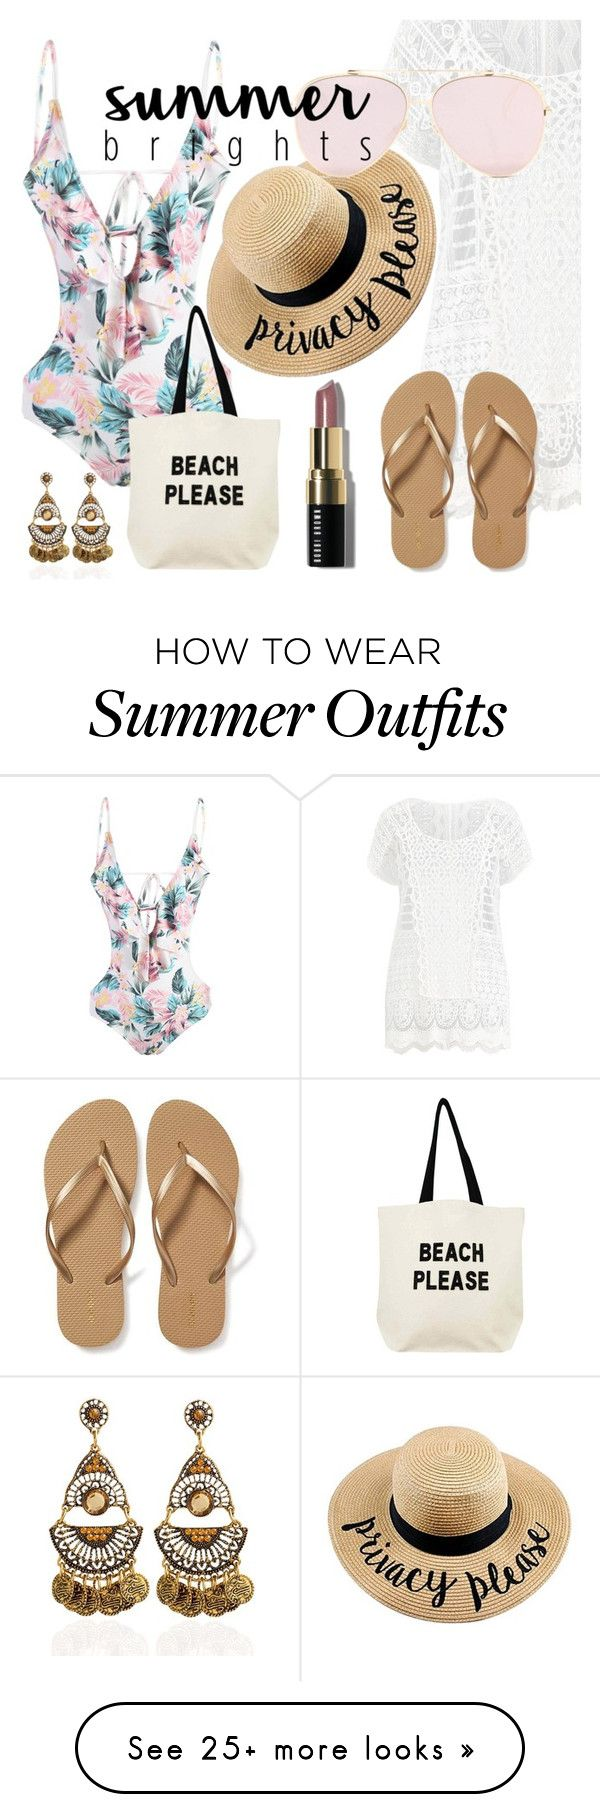 """VACATION"" by lauren53103 on Polyvore featuring Ralph Lauren, Old Navy, Fallon & Royce and Bobbi Brown Cosmetics"